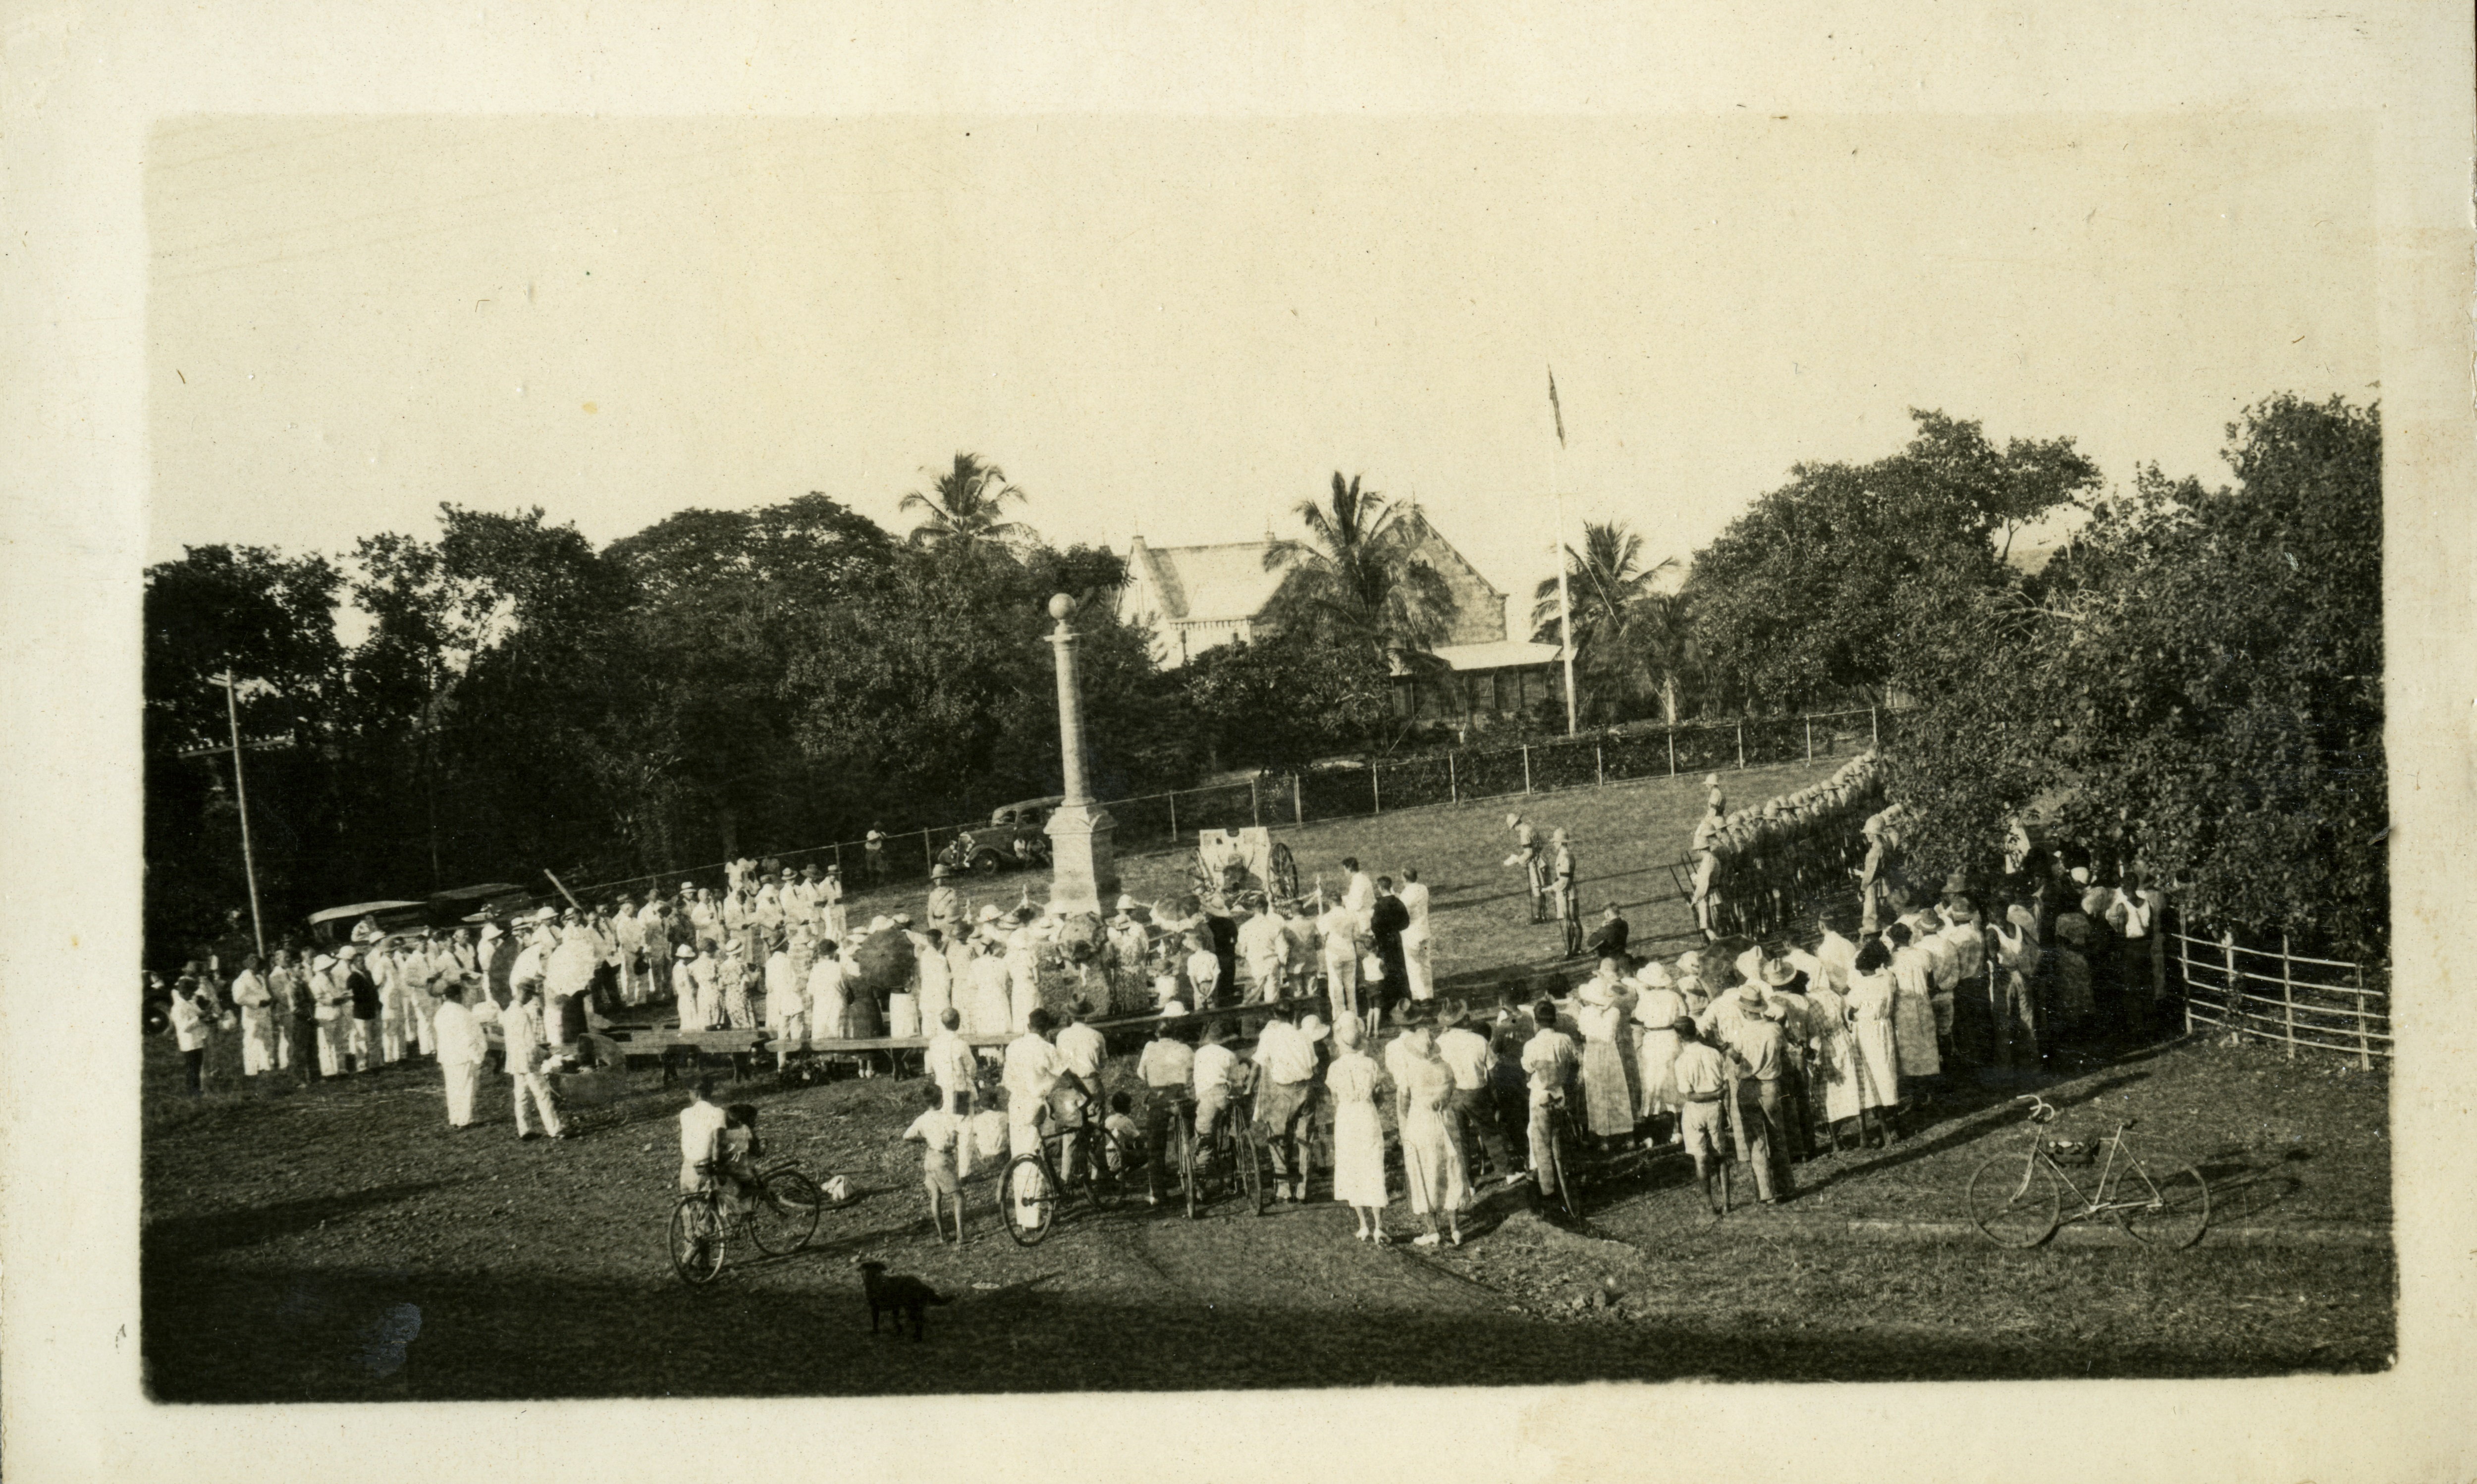 A large crowd of men and women surround the Cenotaph at centre. At far right is a line of troops, the Darwin Garrison. In the background is Government House and a flagpole with flag. In the foreground at right is a pushbike.